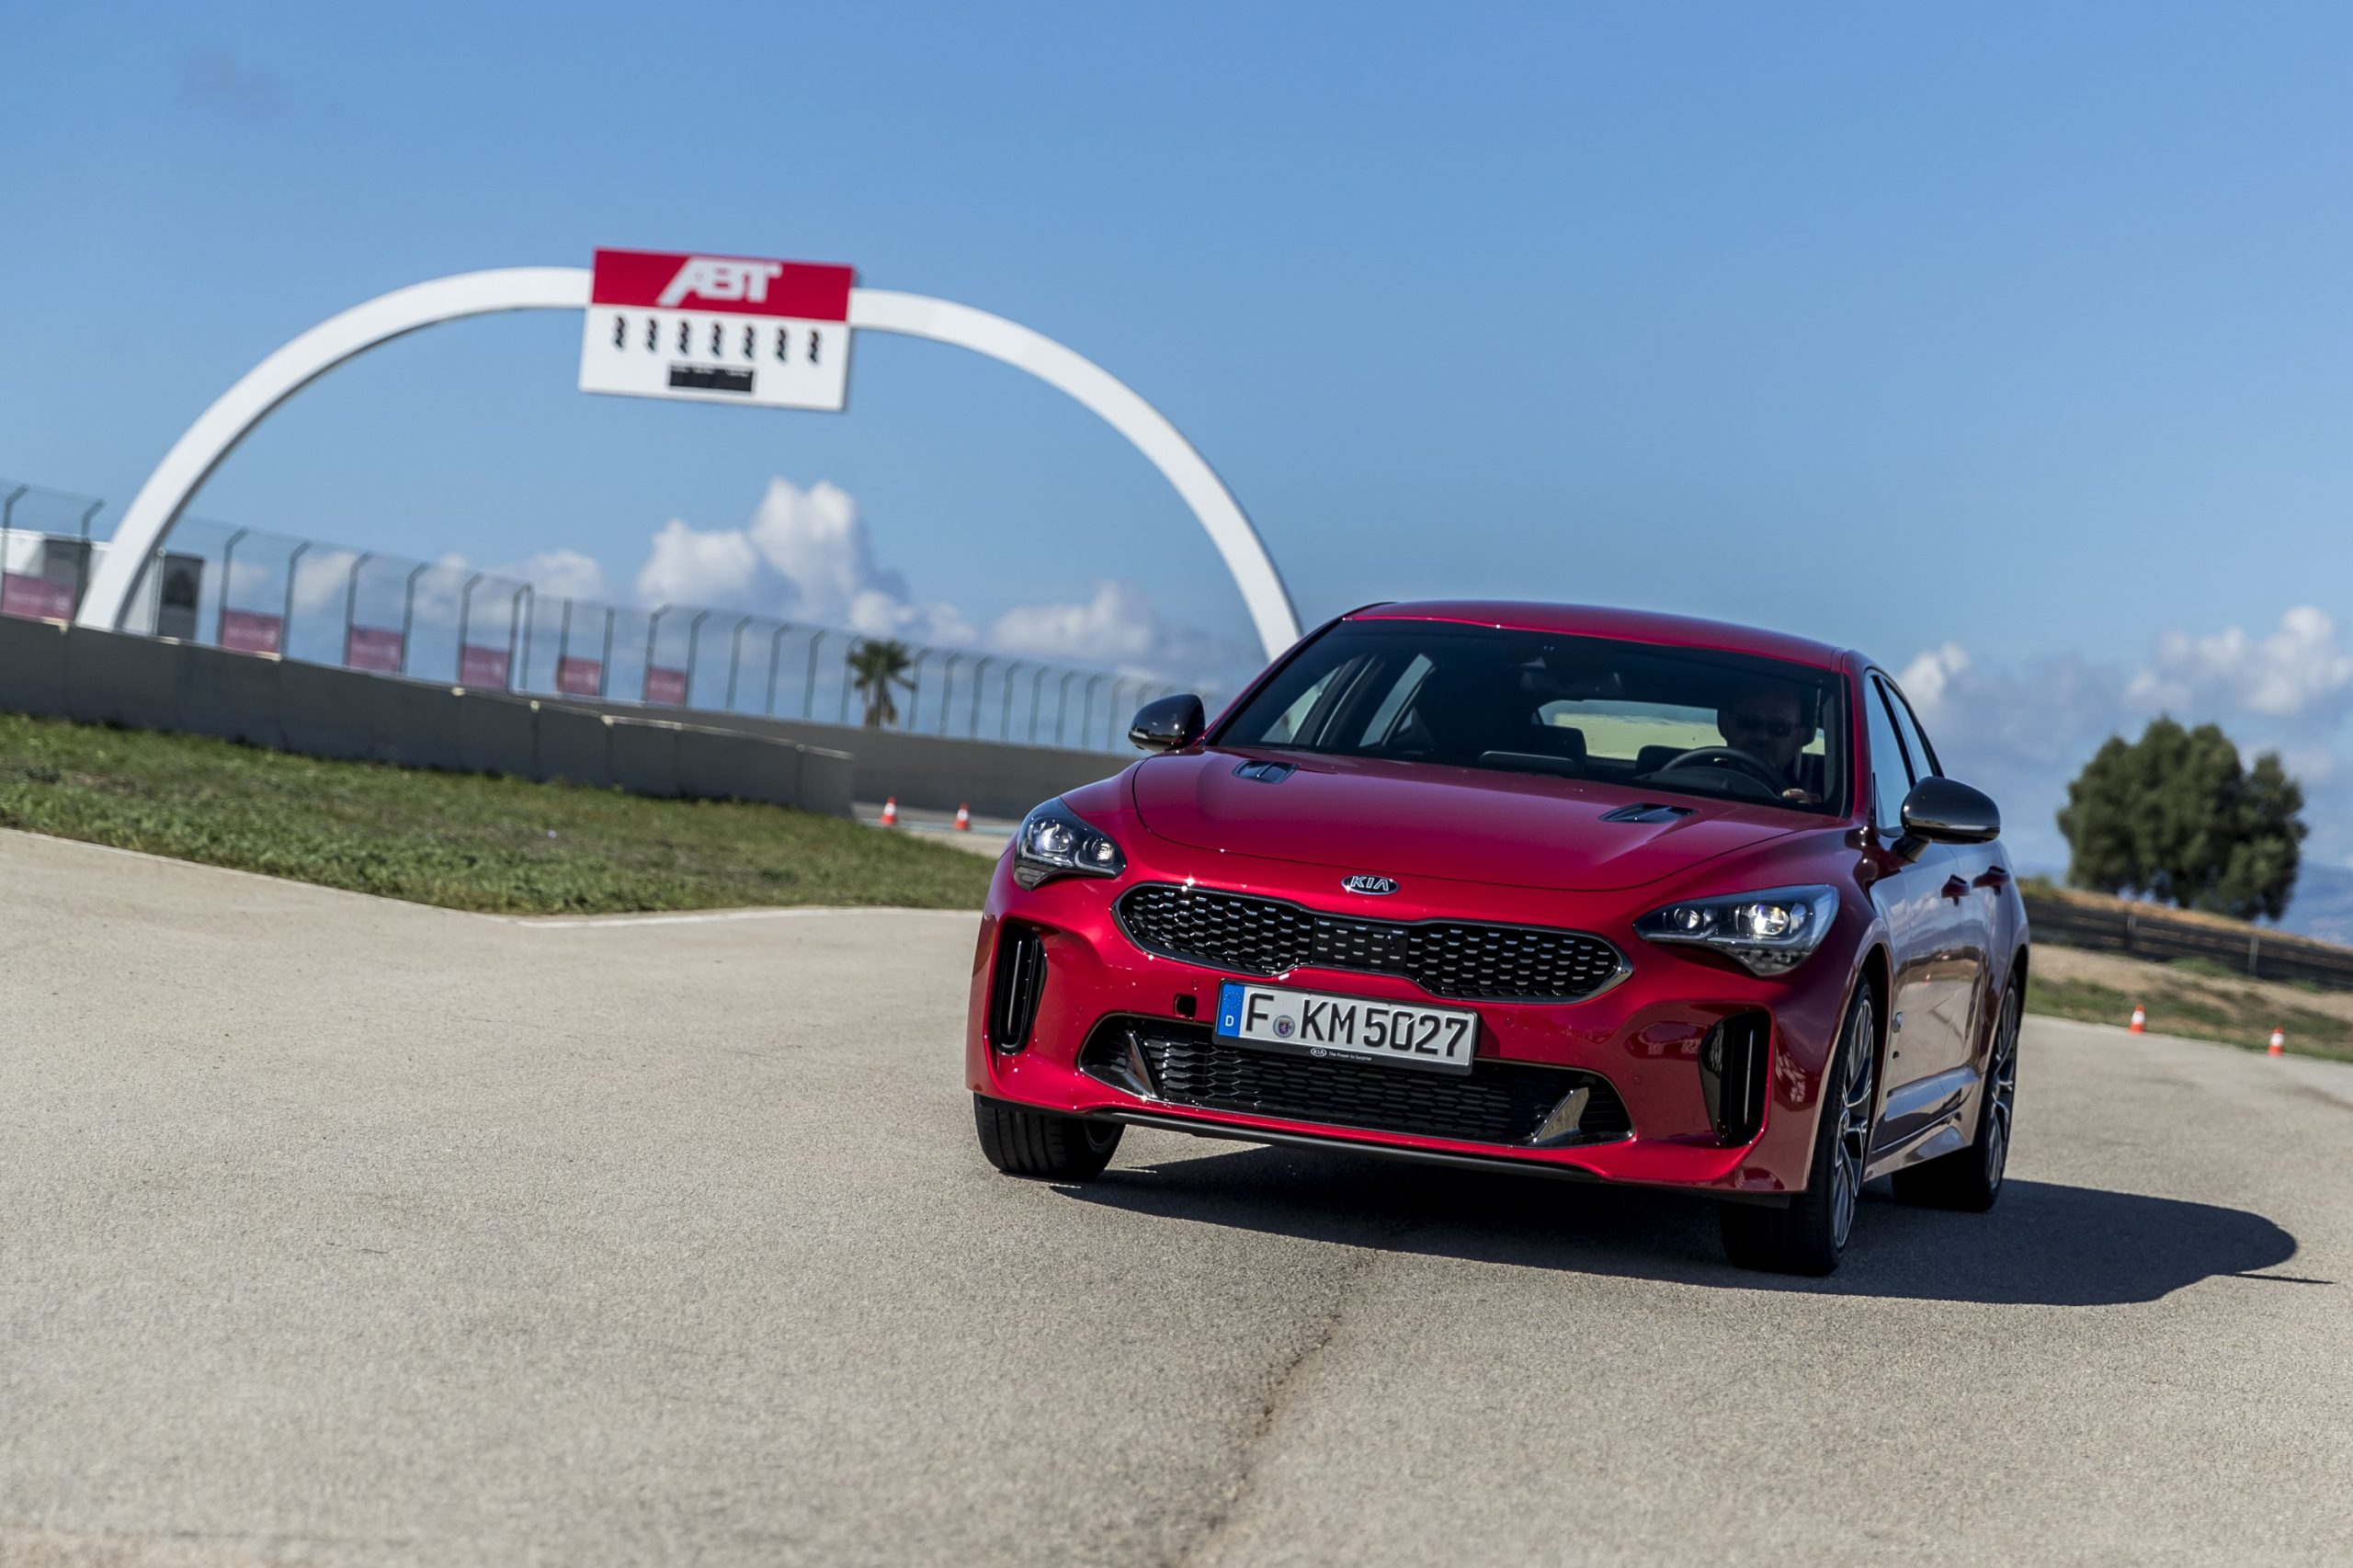 A red Kia Stinger GT on a race track shot from the front 3/4 angle